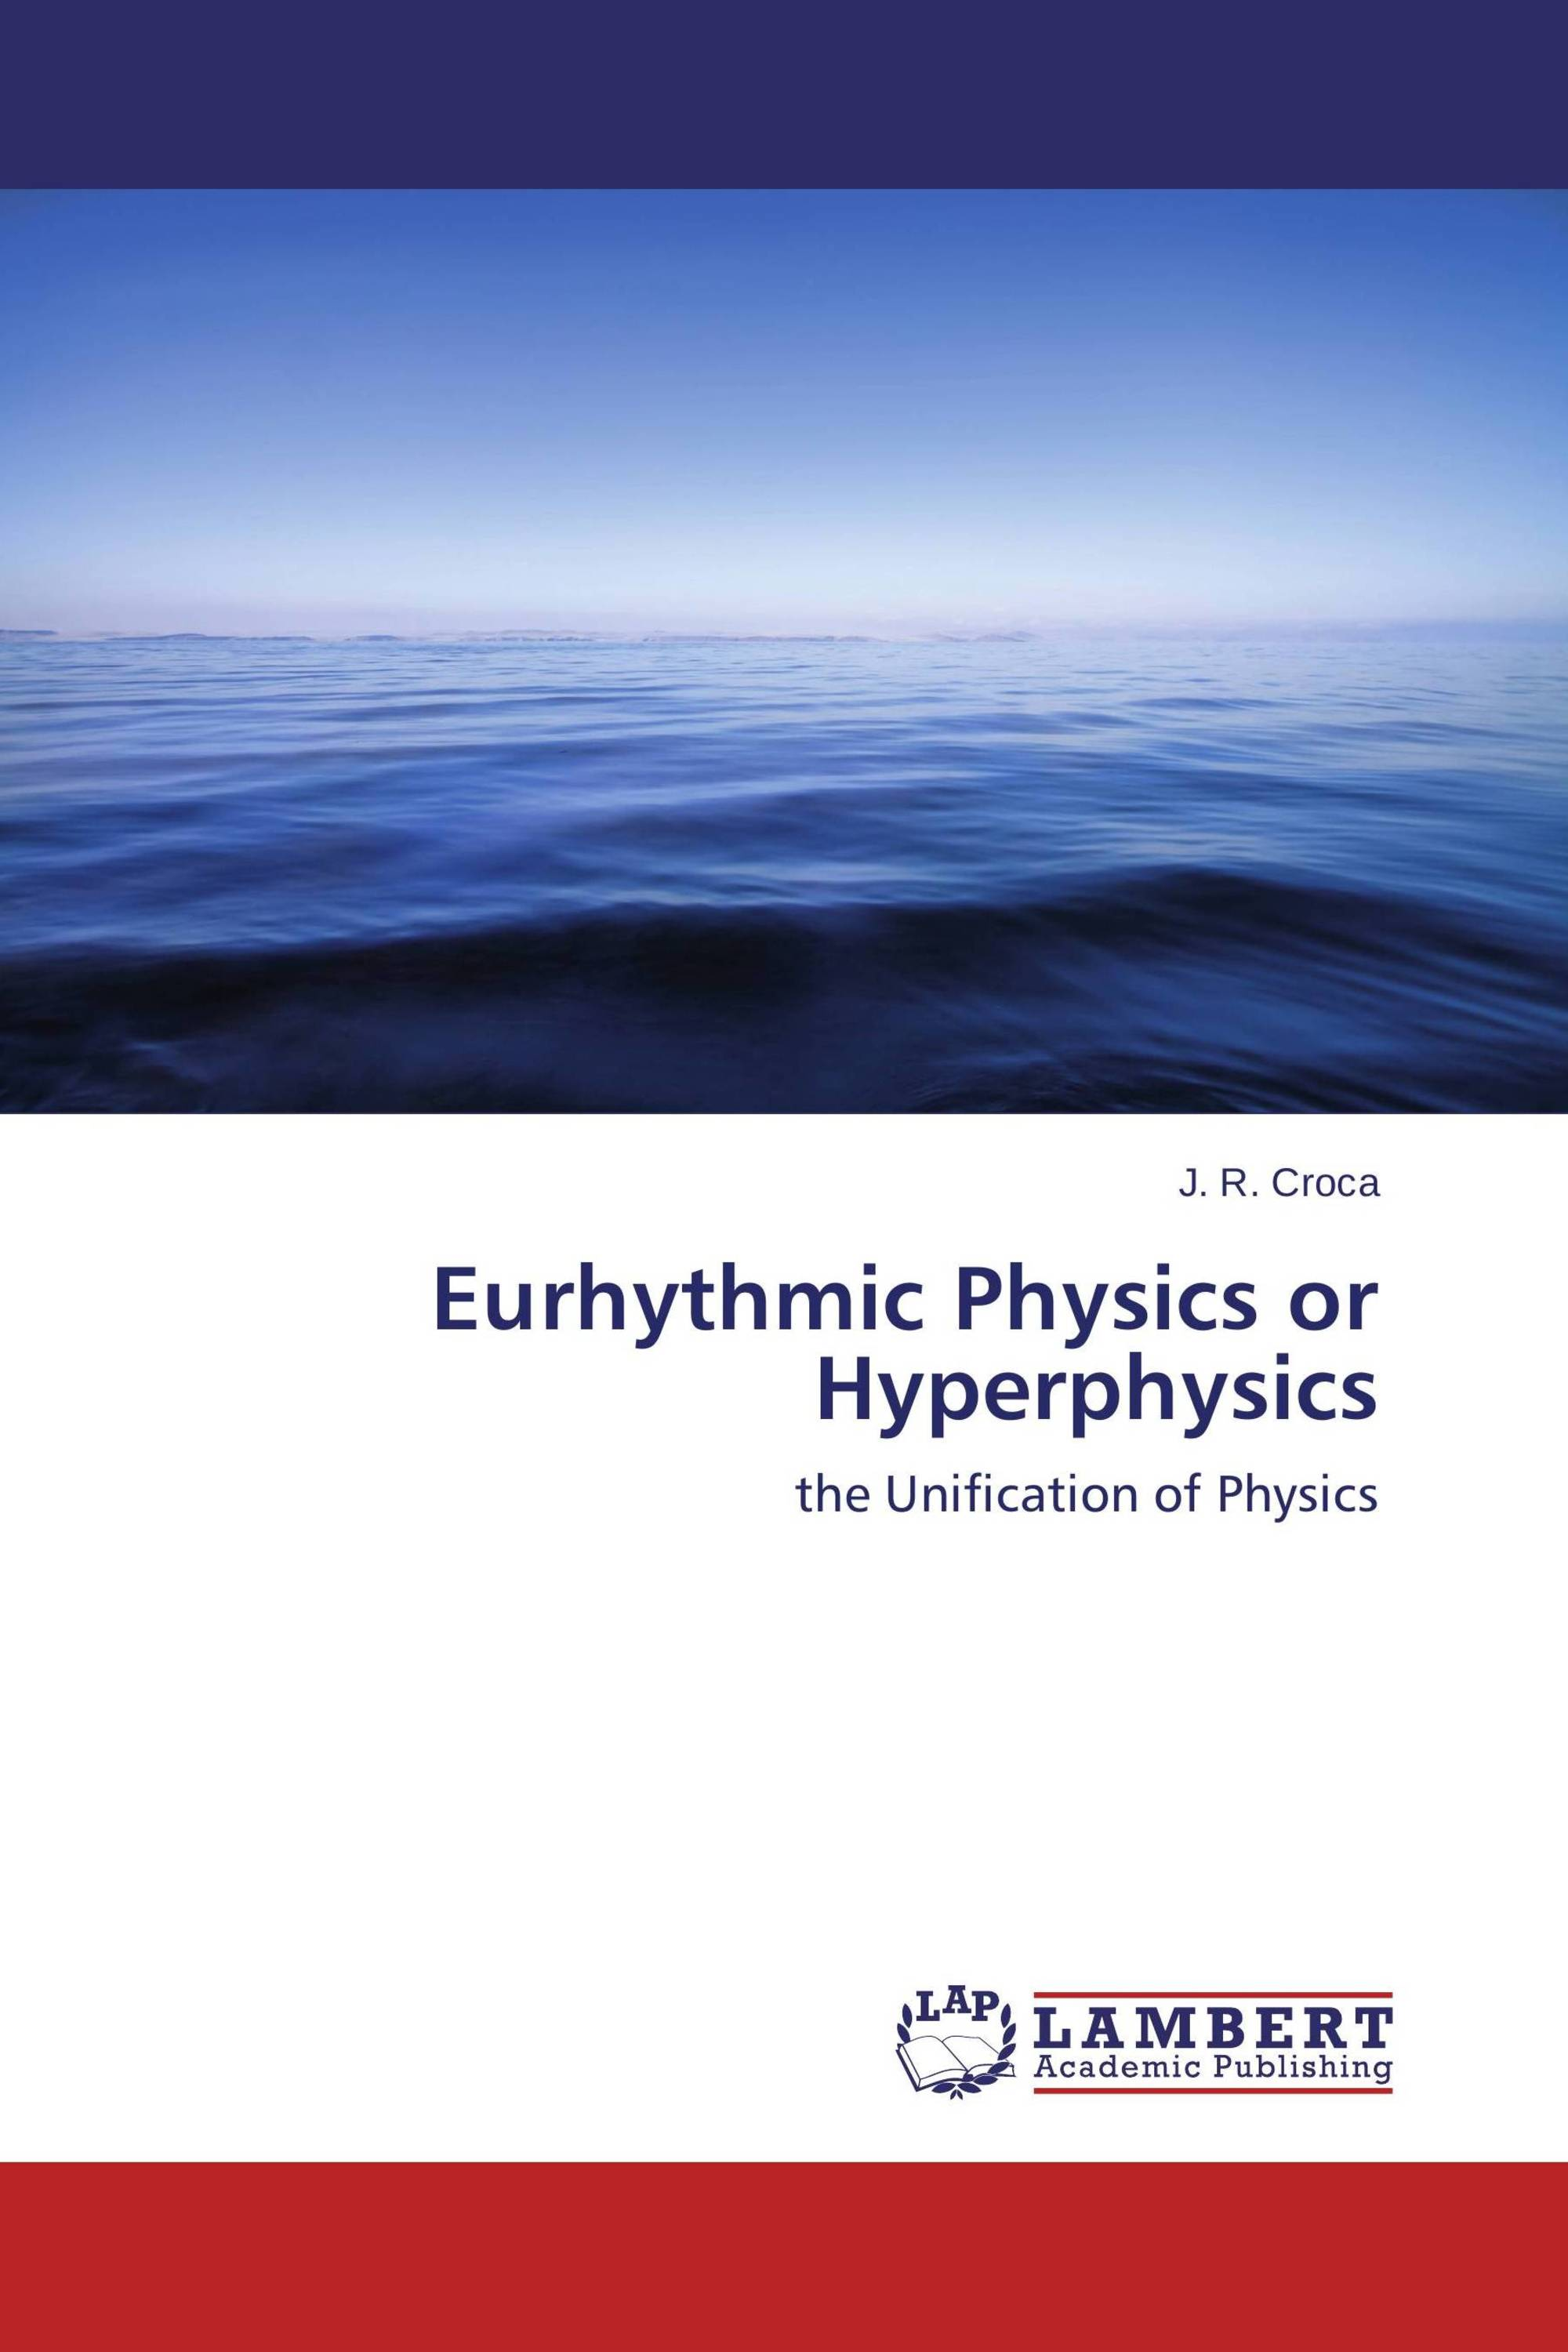 Eurhythmic Physics or Hyperphysics